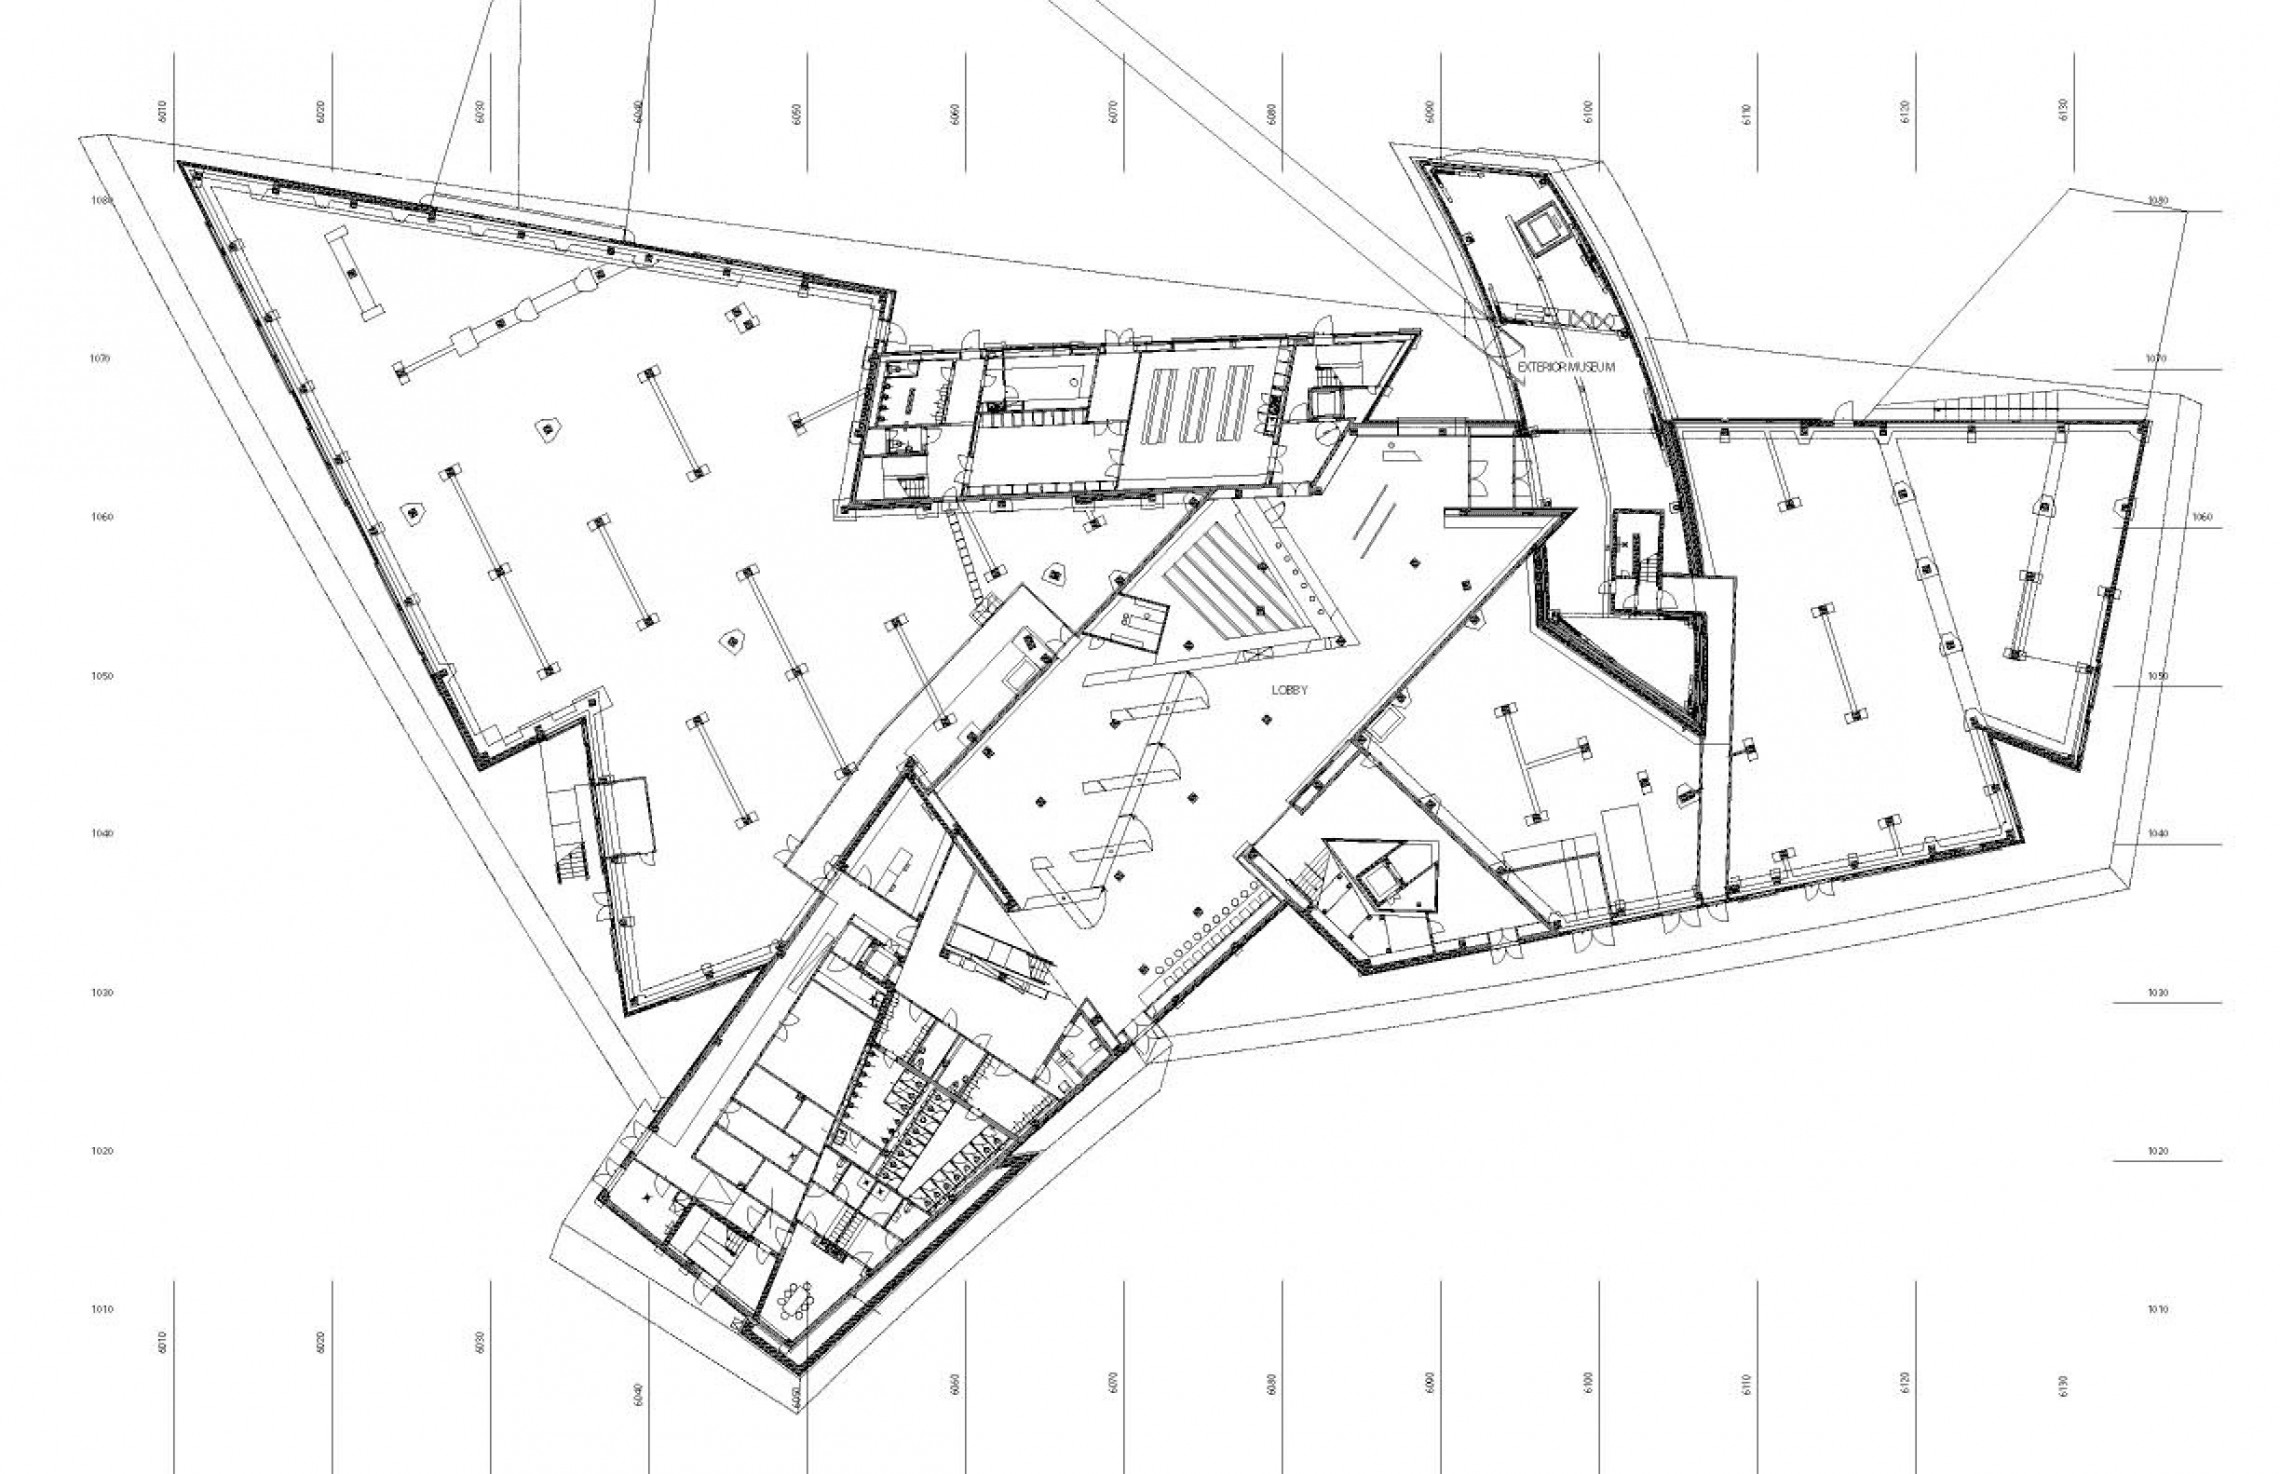 globe theater diagram 9 pin connector imperial war museum north - libeskind